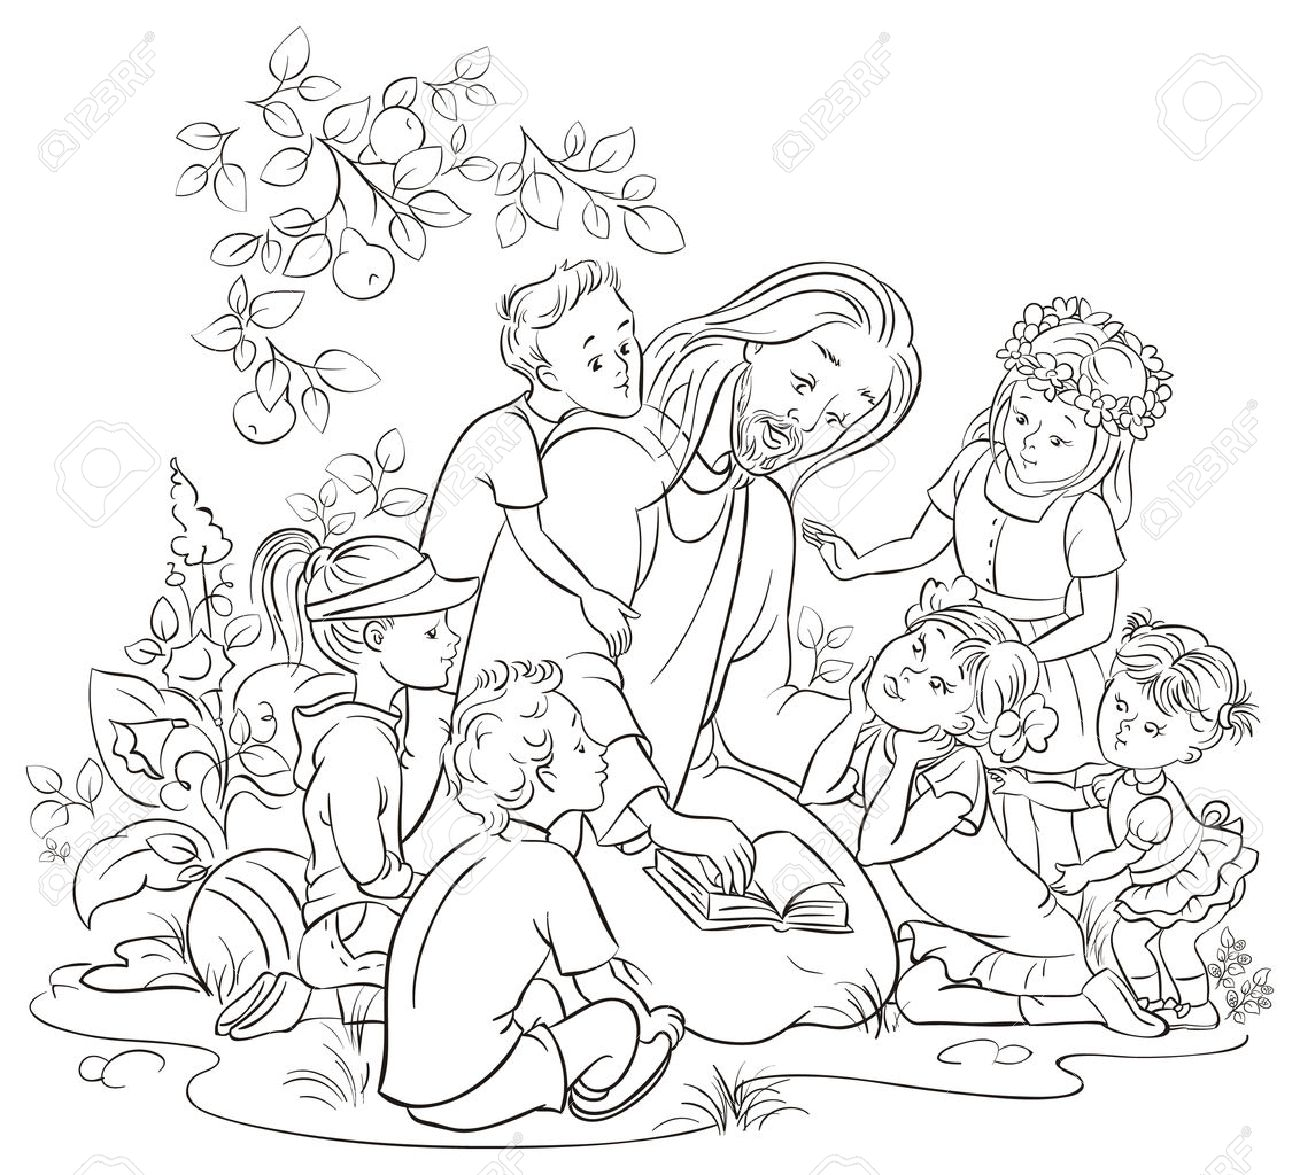 jesus reading the bible with children colouring page royalty free